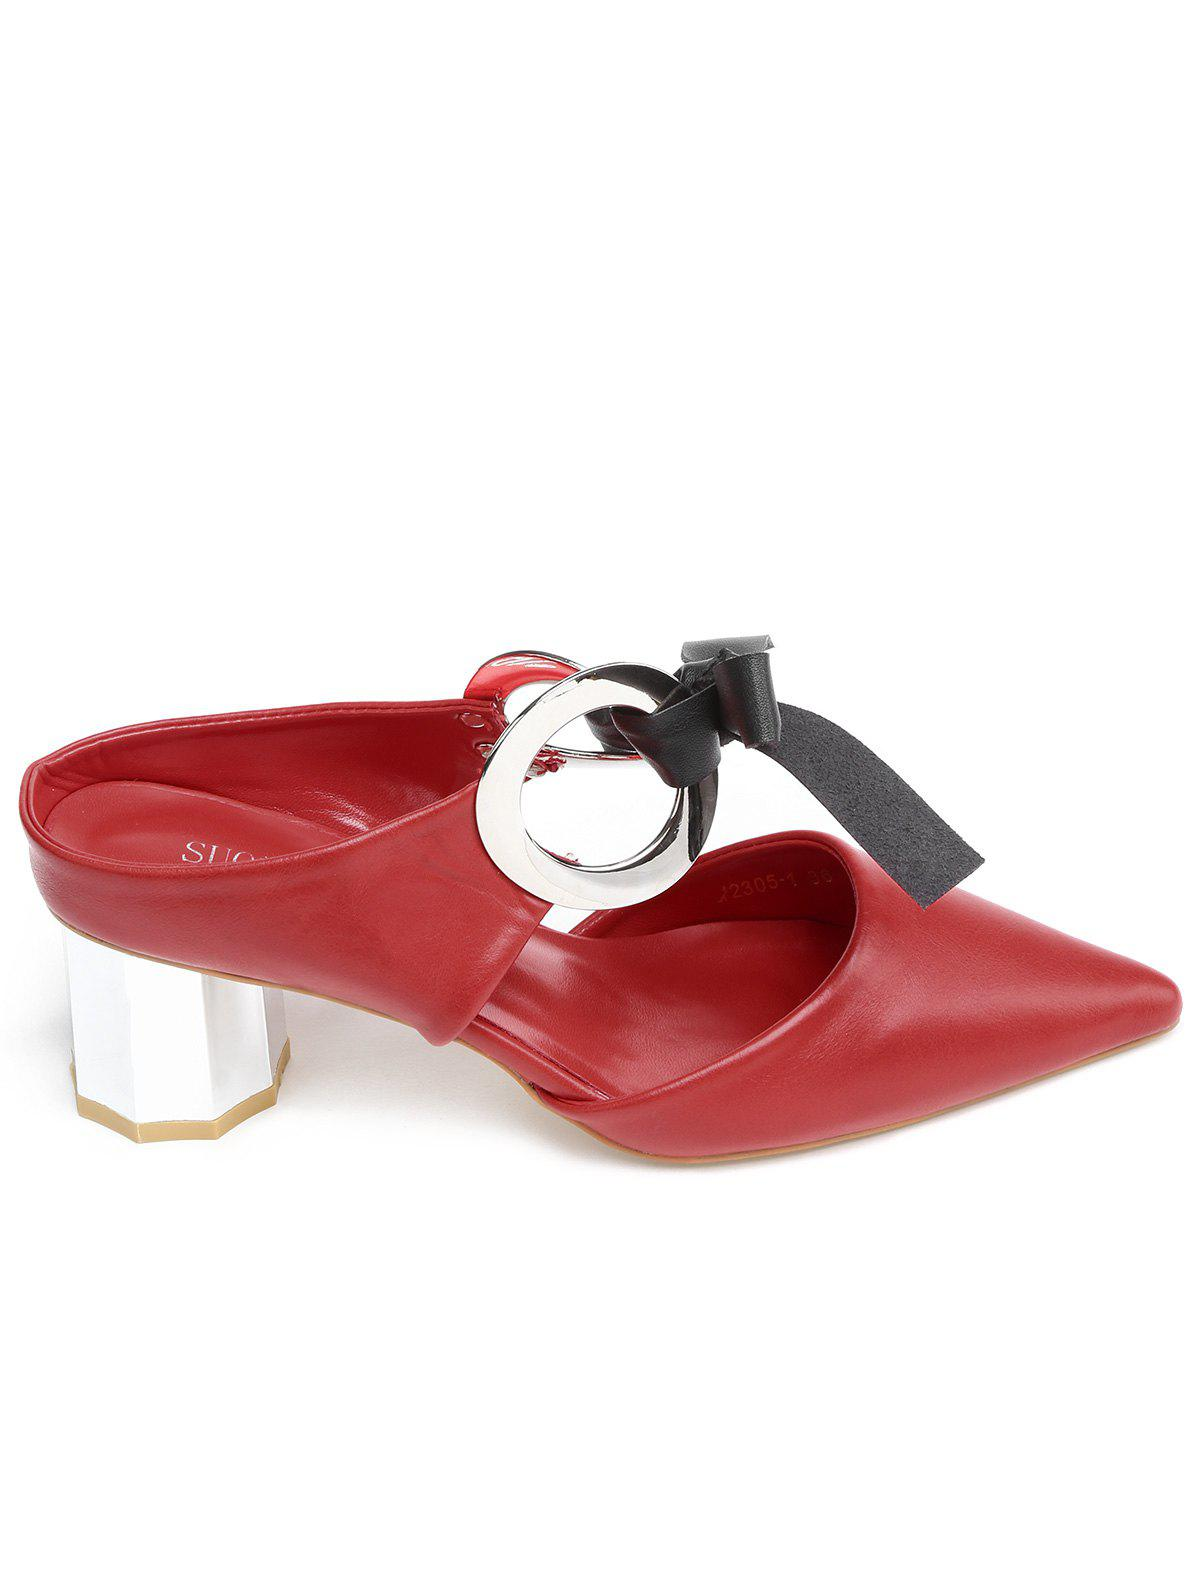 Point Toe Bowknot PU Leather Block Heel Sandals - LOVE RED 37